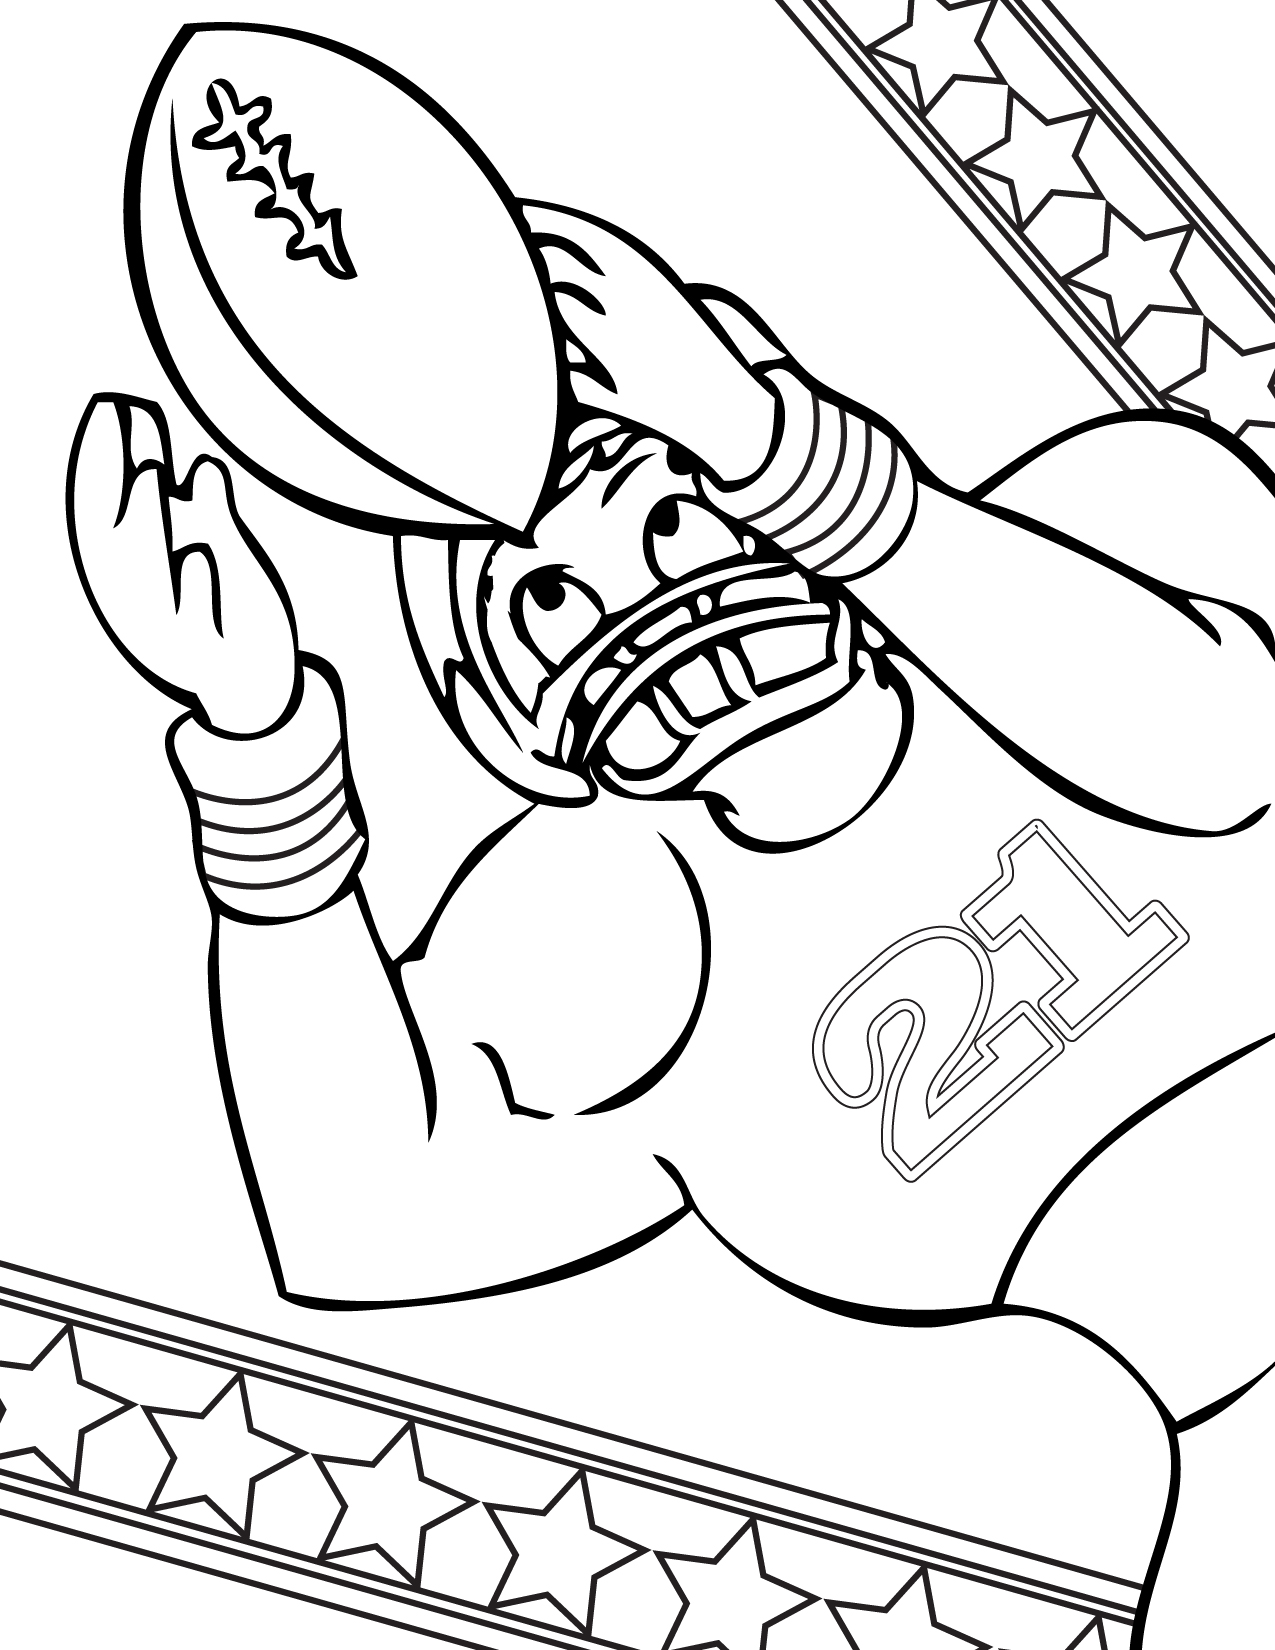 Coloring Pages Printable Sports